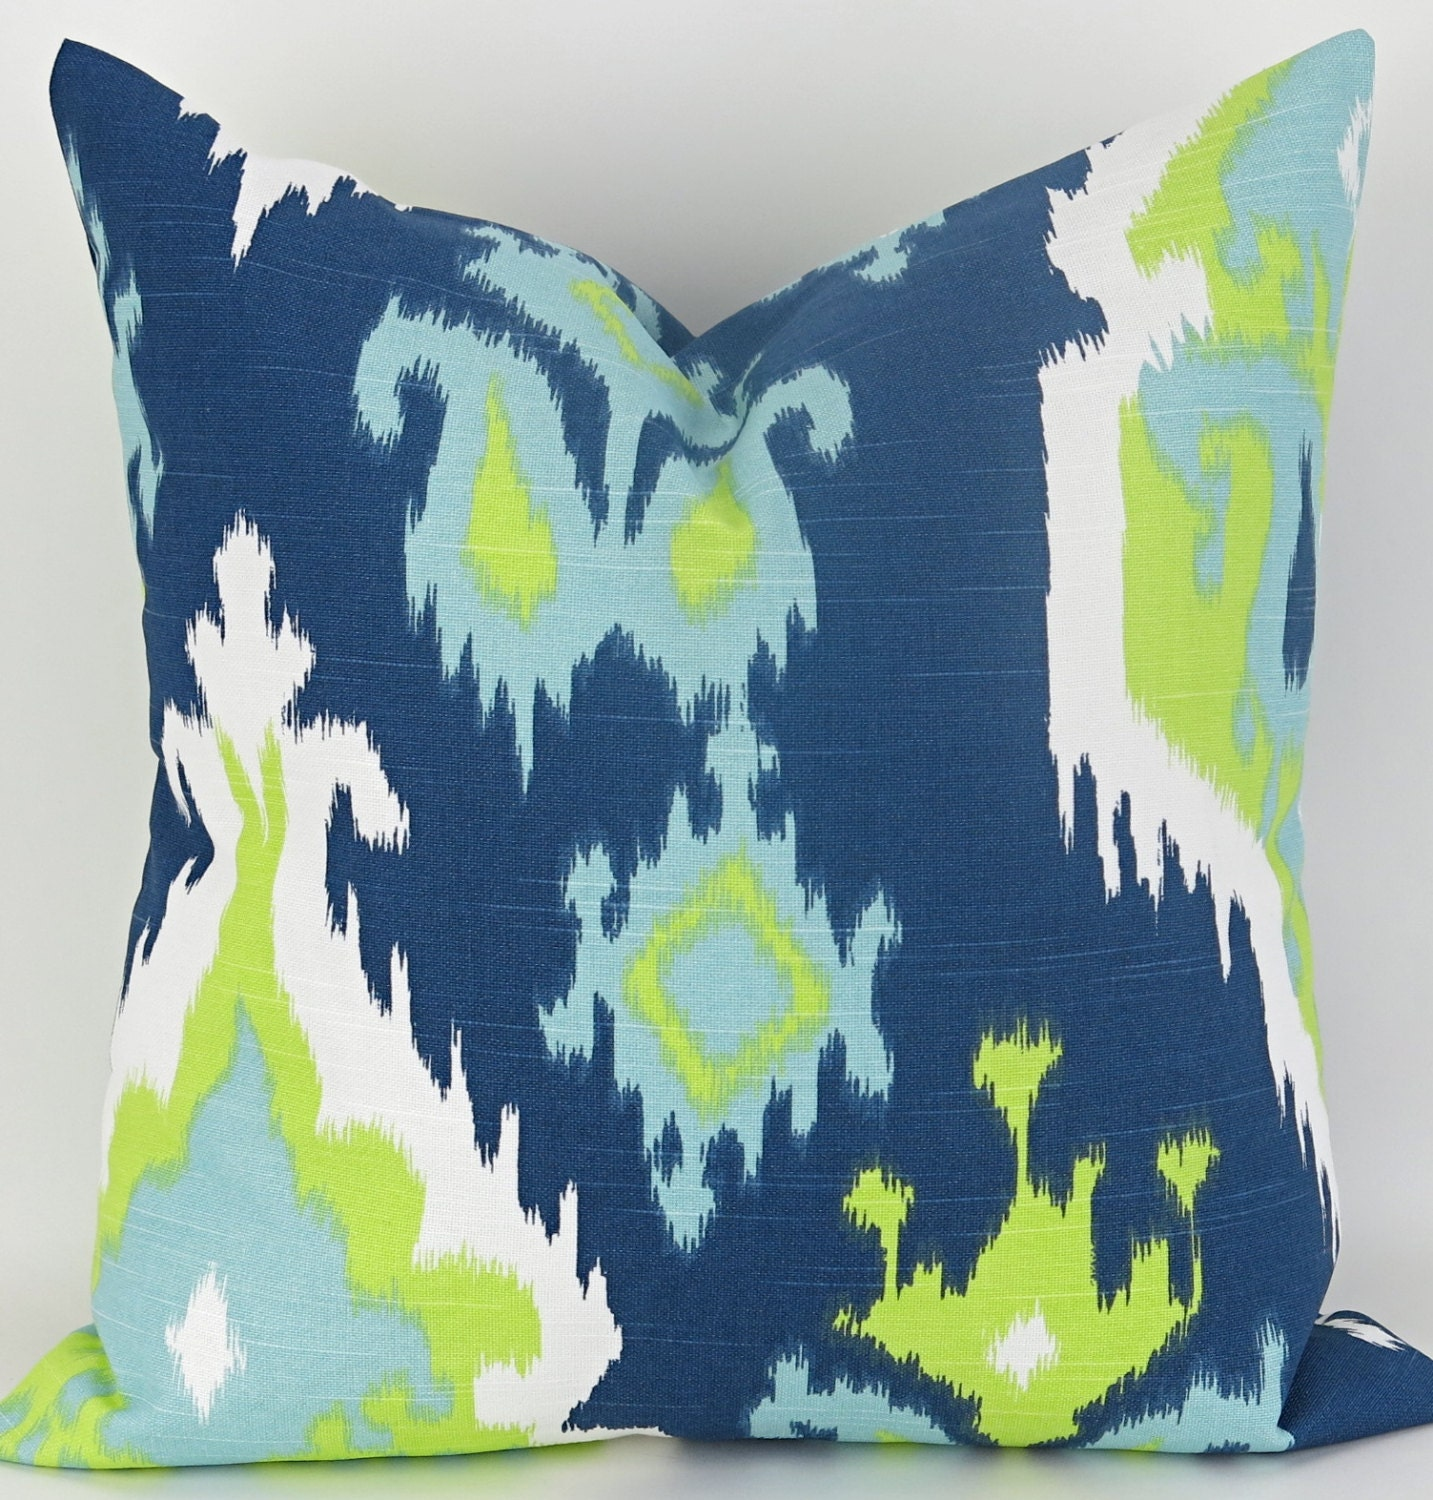 Navy & Green Floor Pillow up to 28x28 inch Big Navy Blue